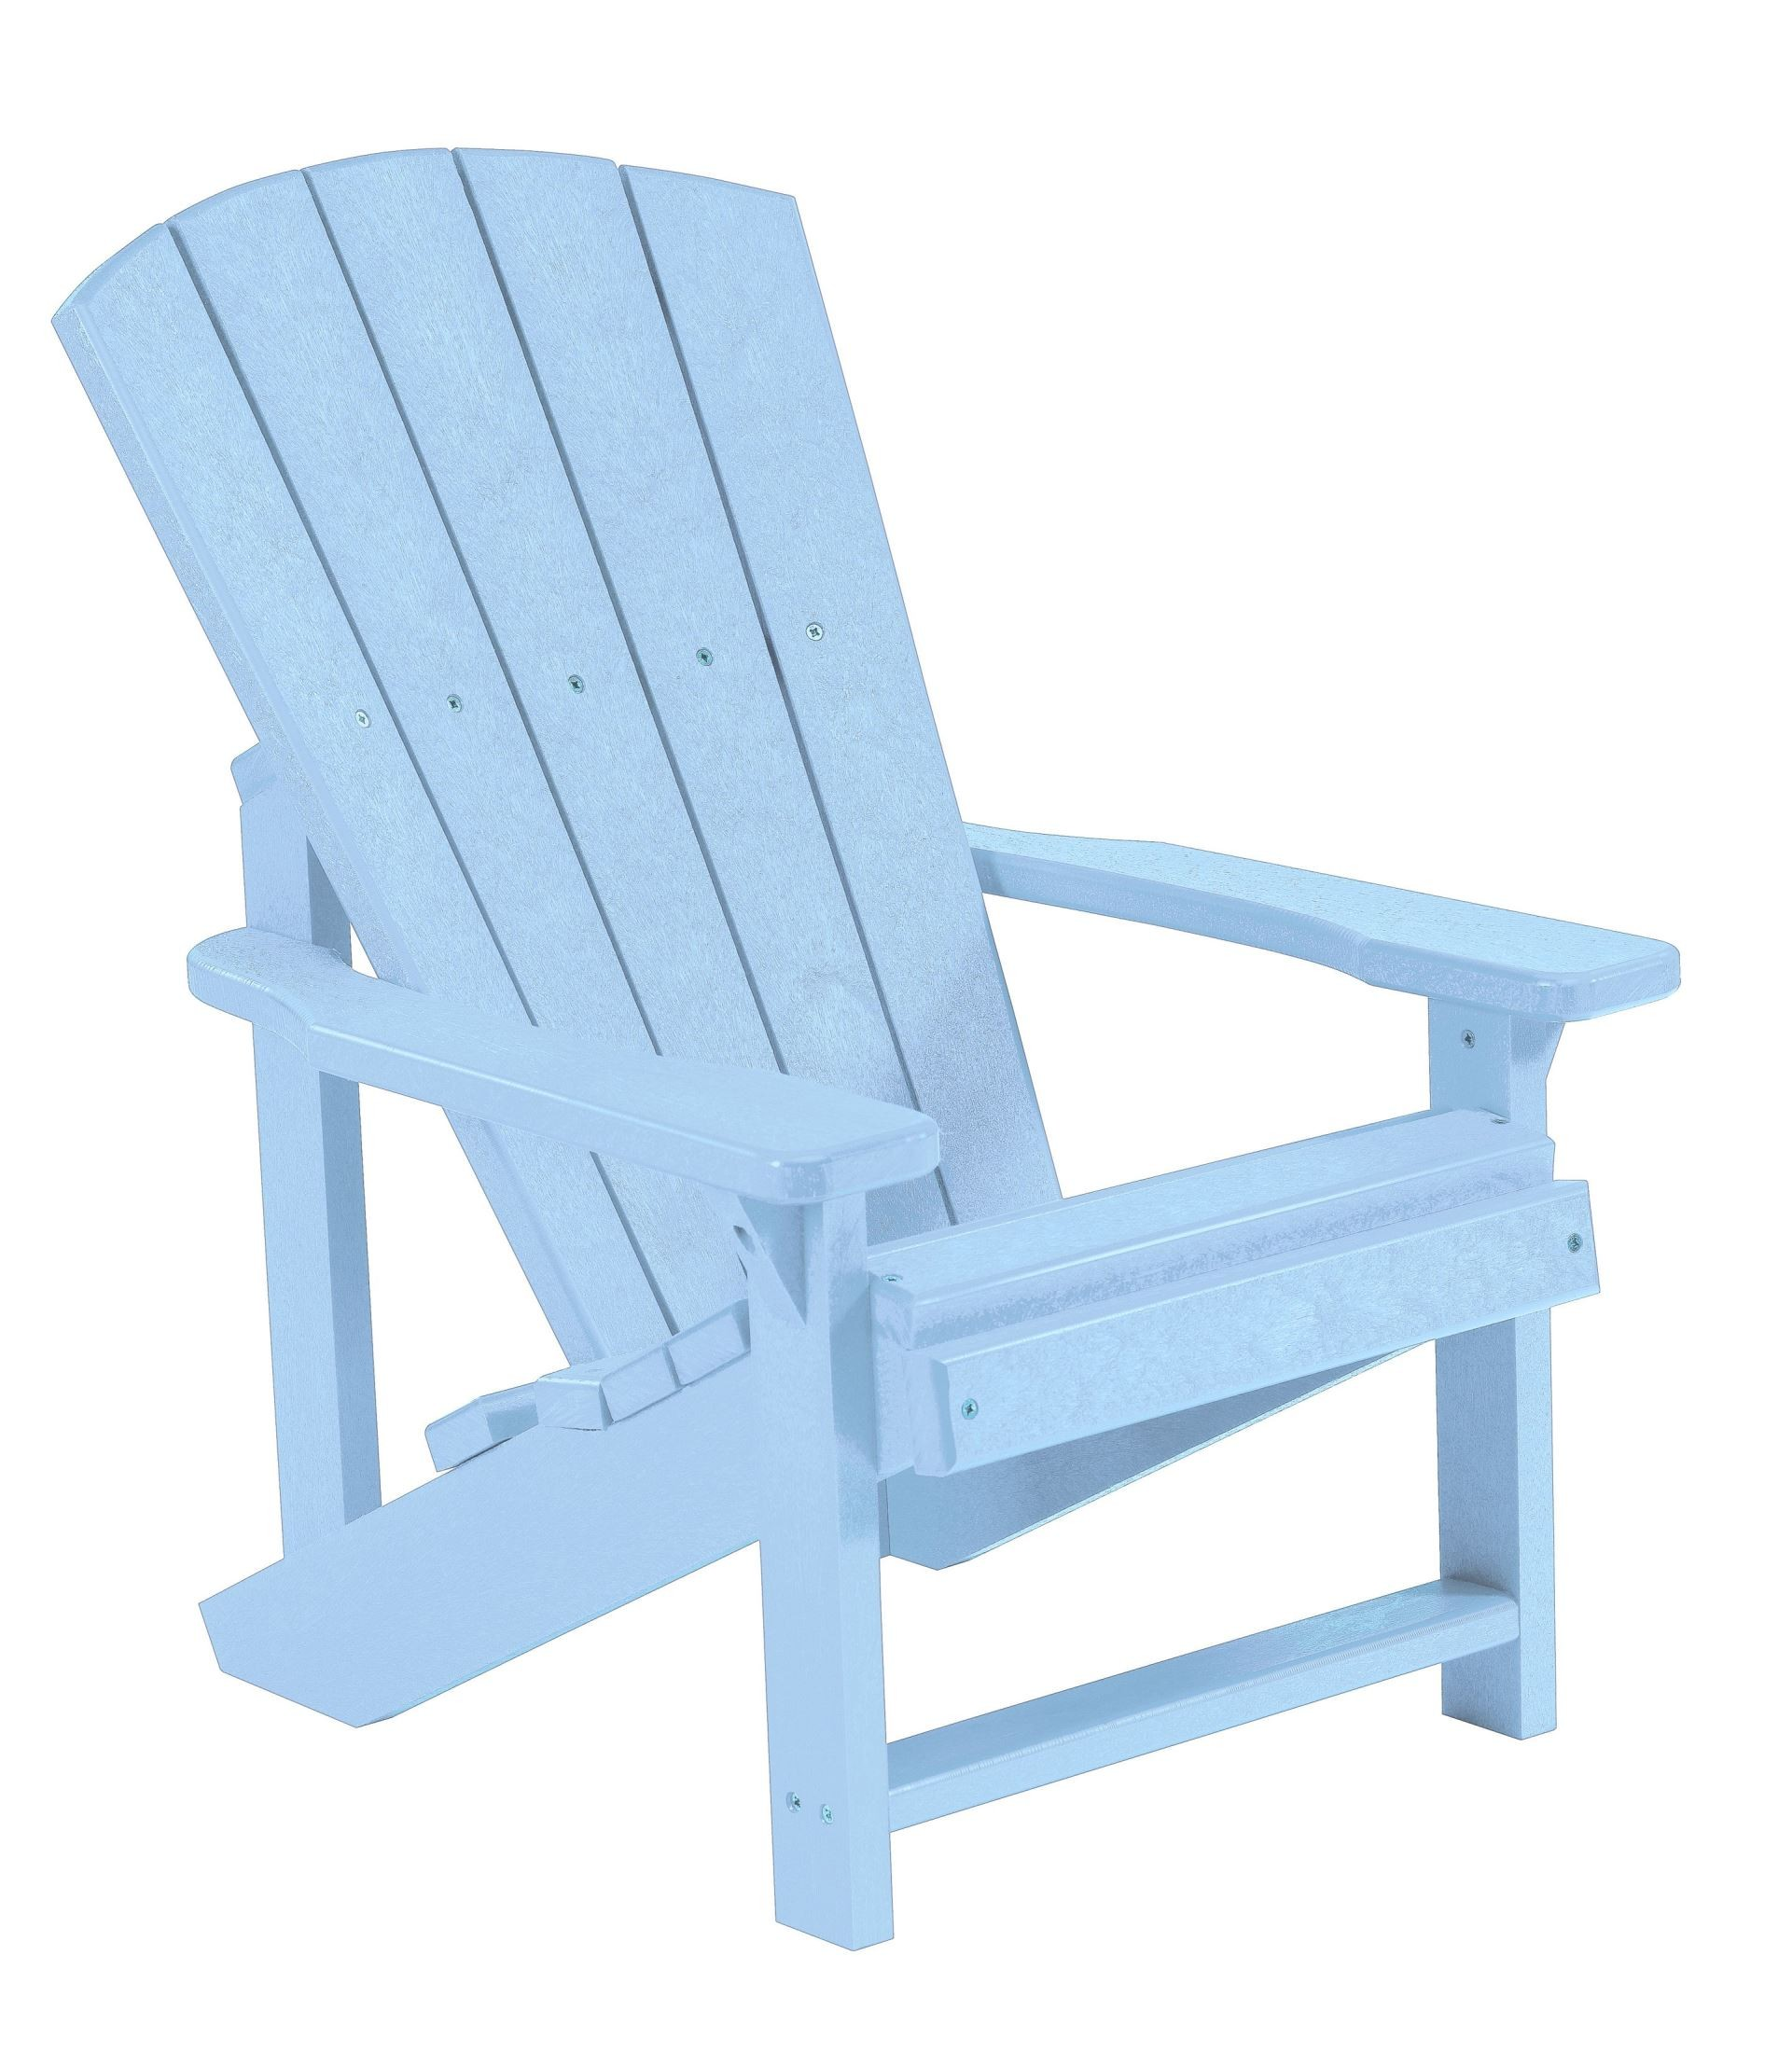 Generations Sky Blue Kids Adirondack Chair From Cr Plastic